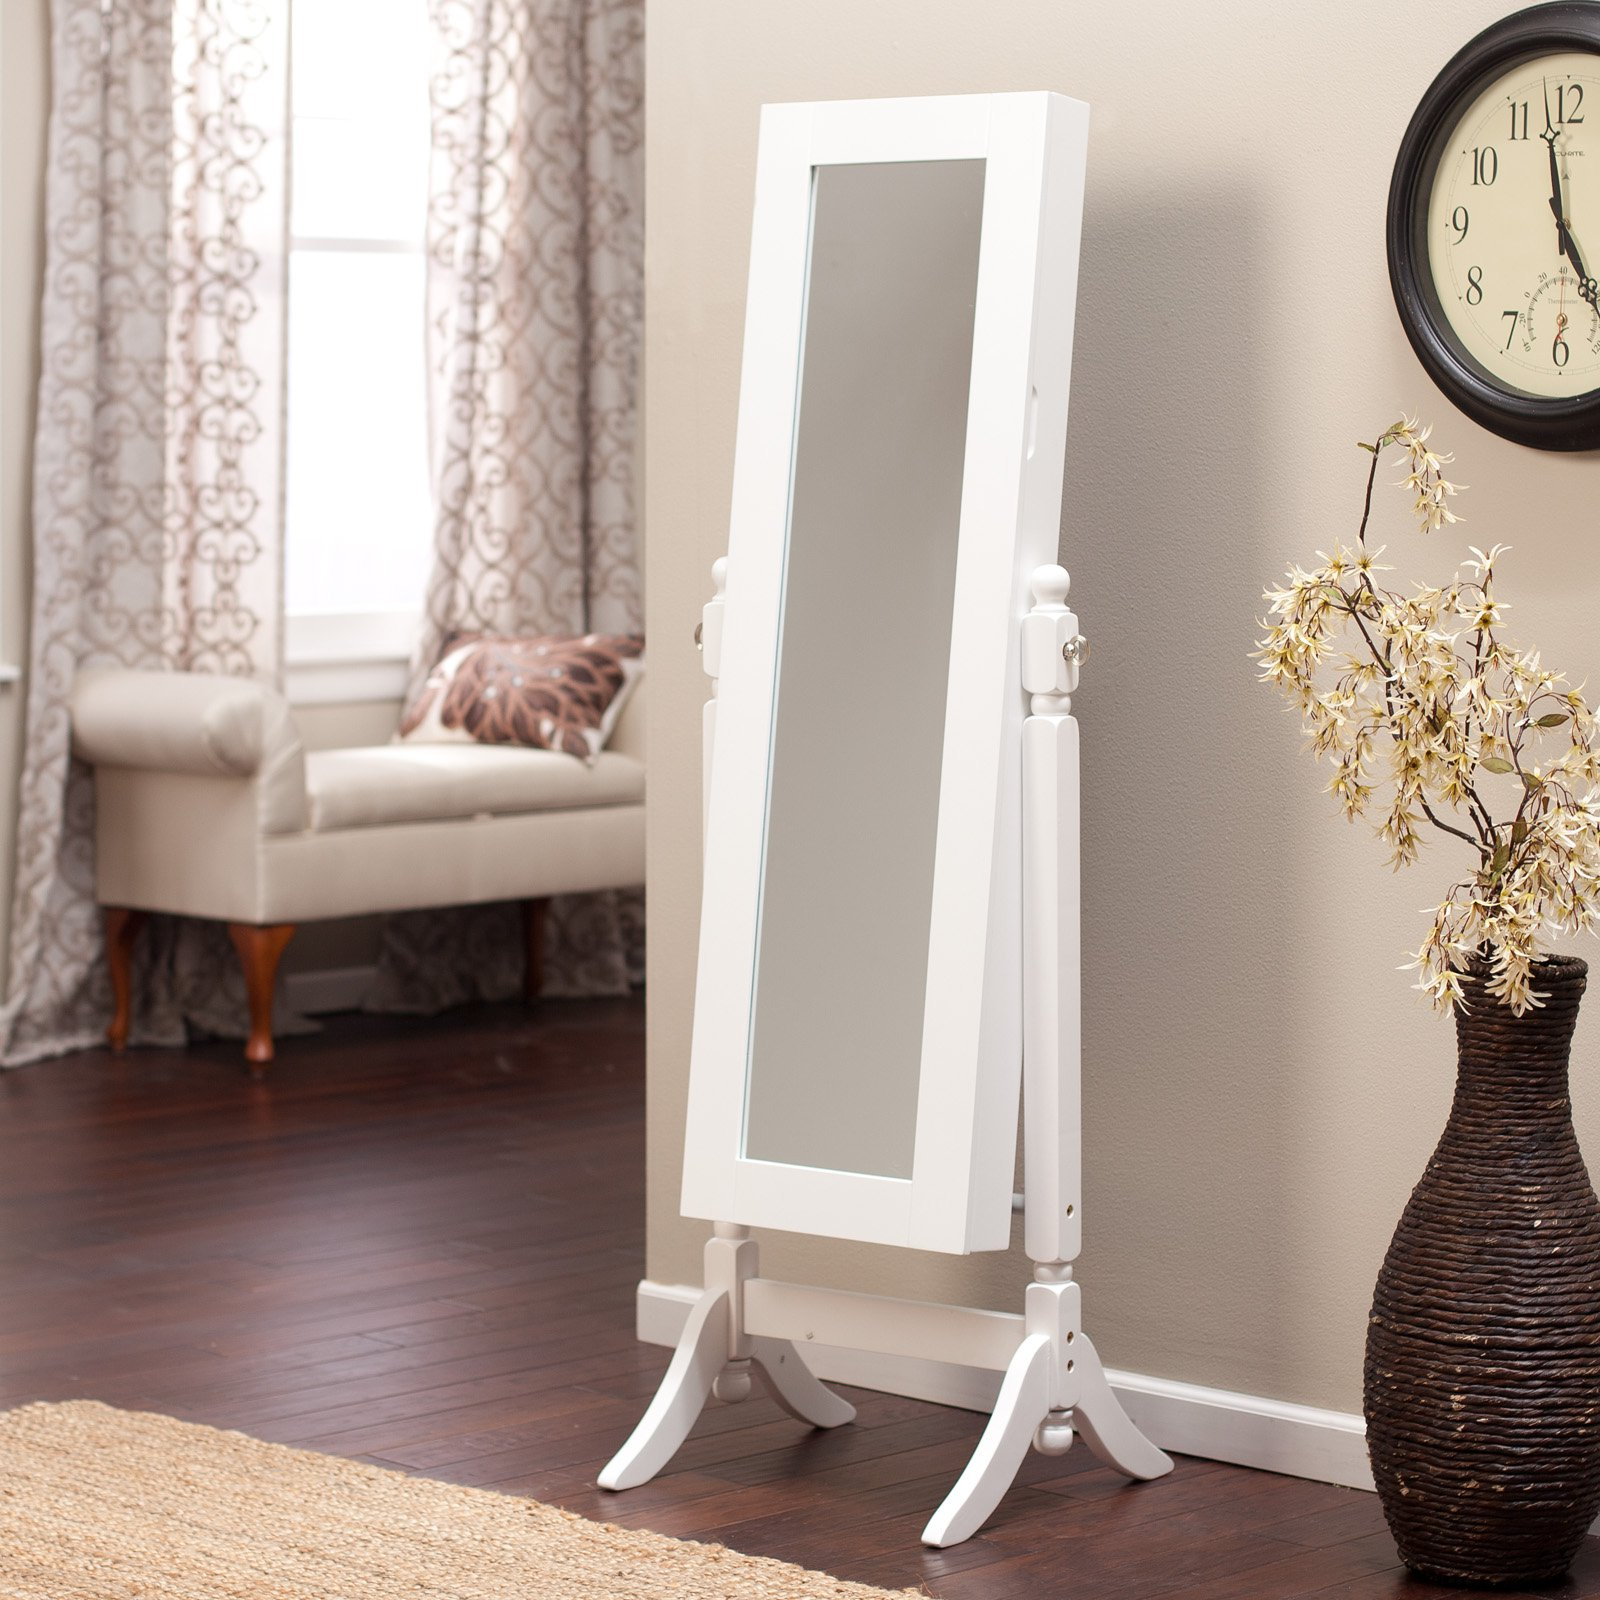 Heritage Jewelry Armoire Cheval Mirror High Gloss White by 4 Seasons Global Inc